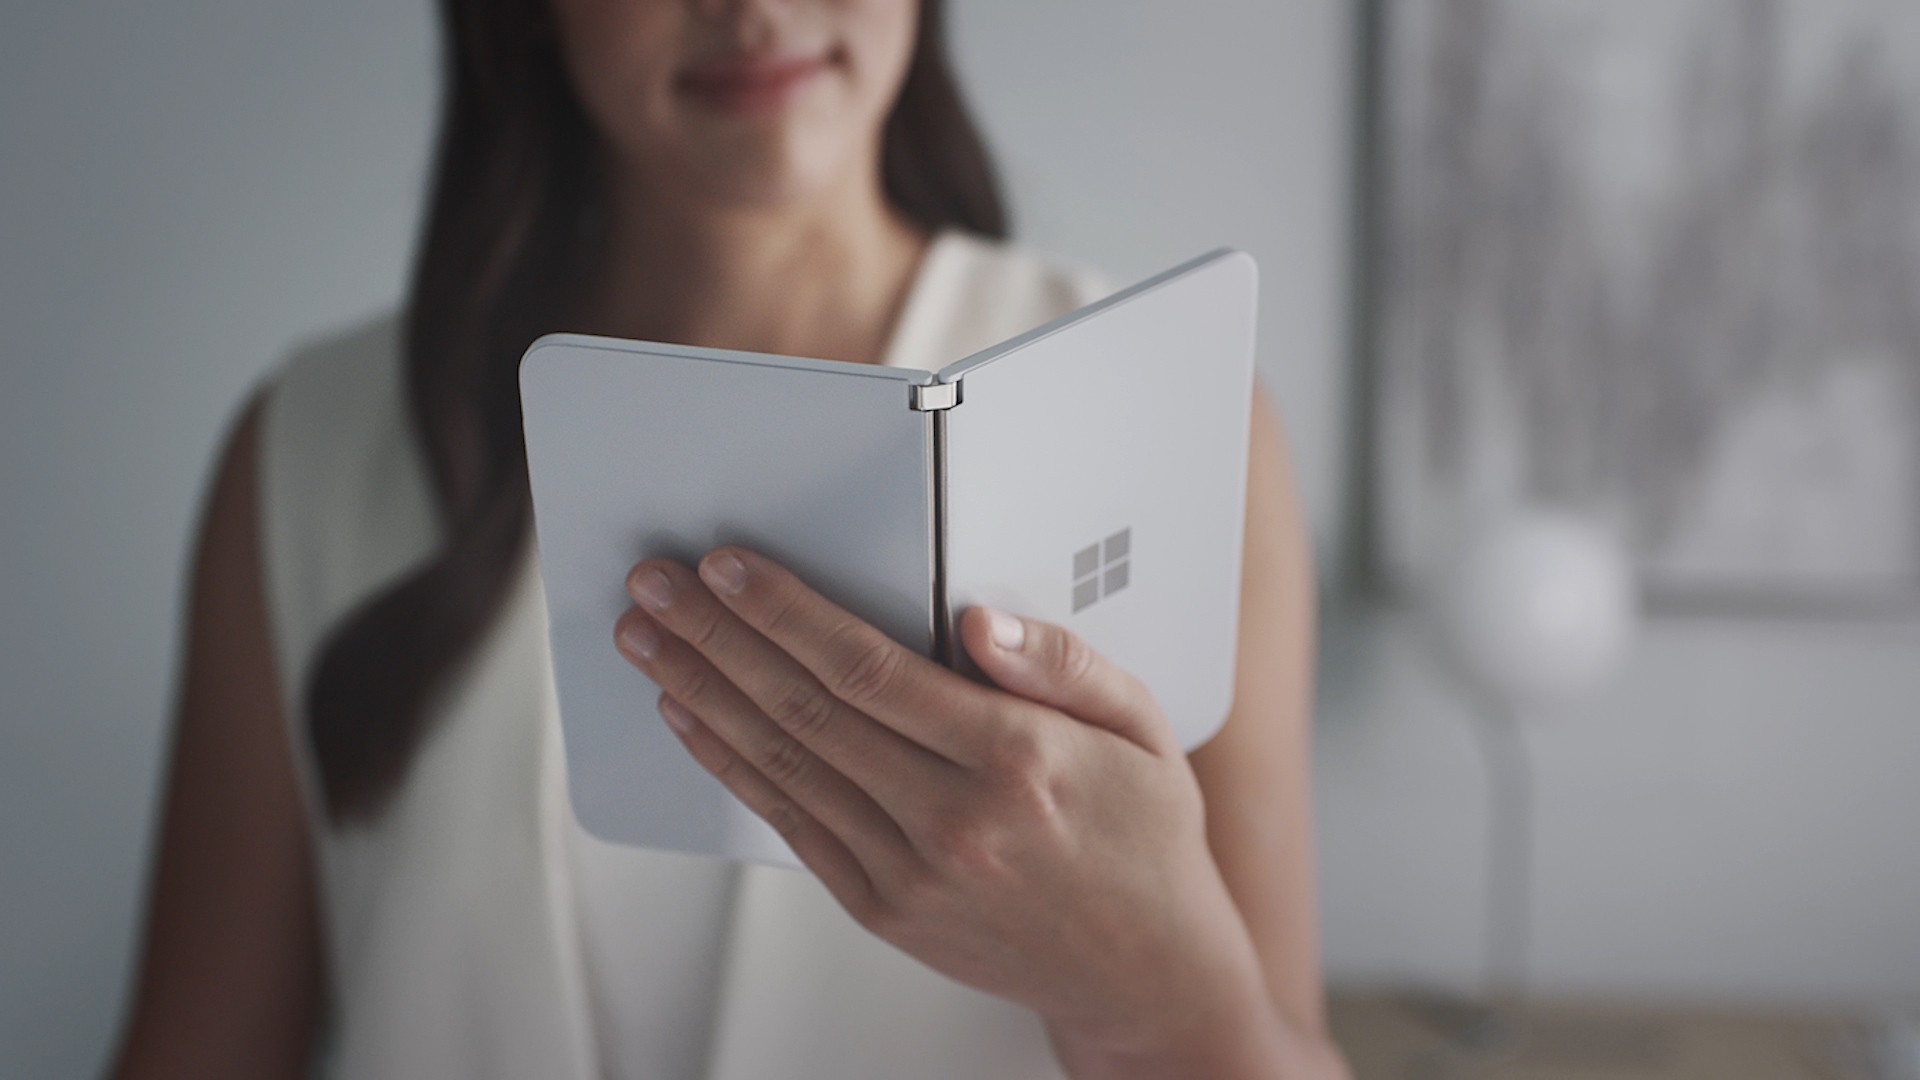 Microsoft Surface Duo launch could be just weeks away